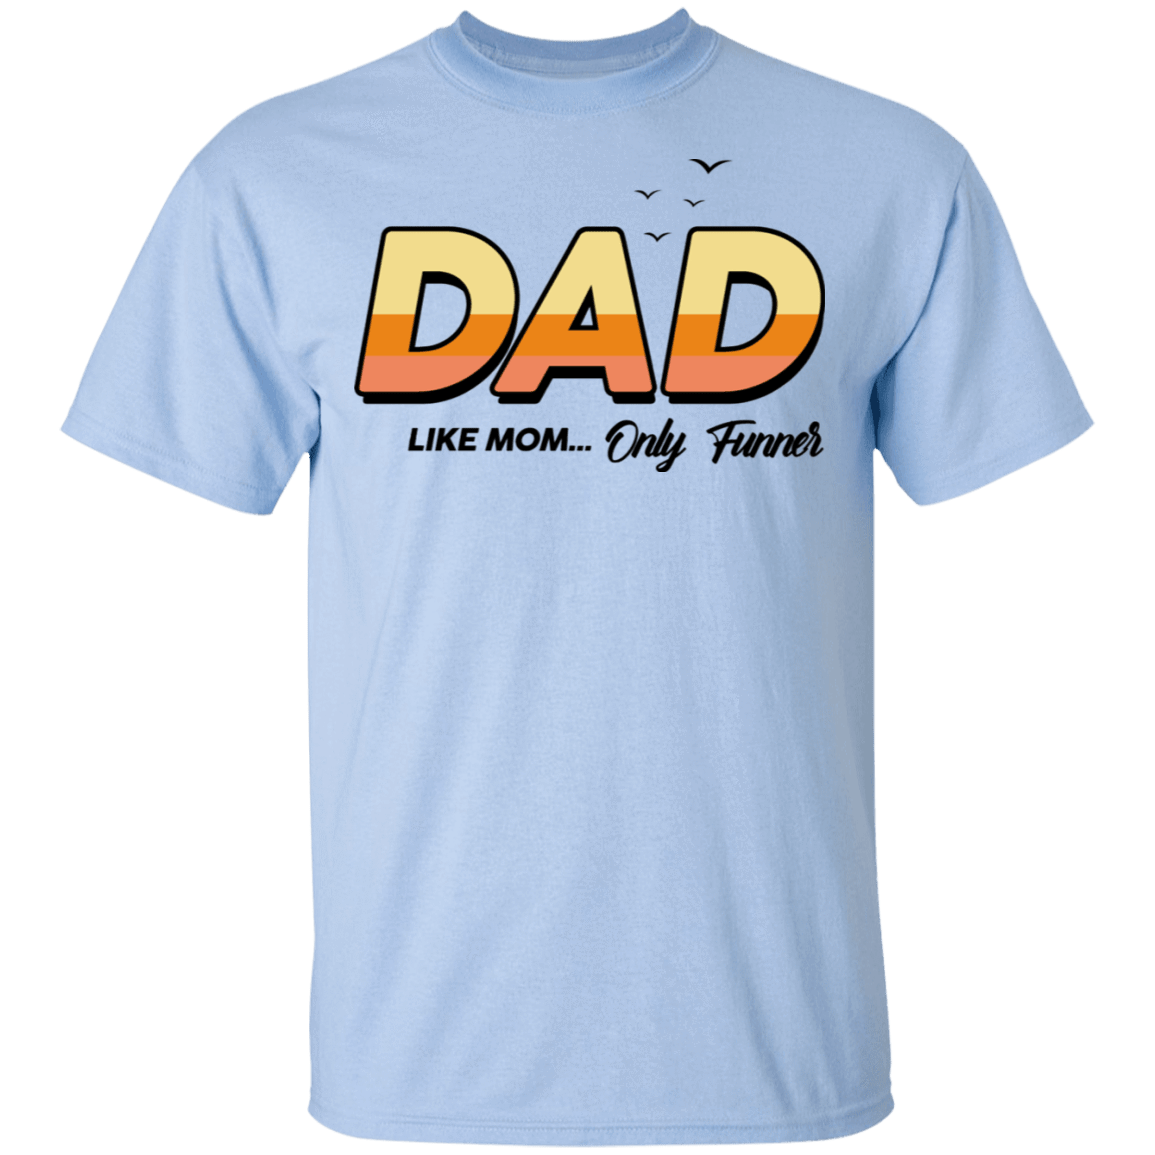 Dad Like Mom ... Only Funner T-Shirts, Hoodies, Tank 22-9800-79999096-47430 - Tee Ript